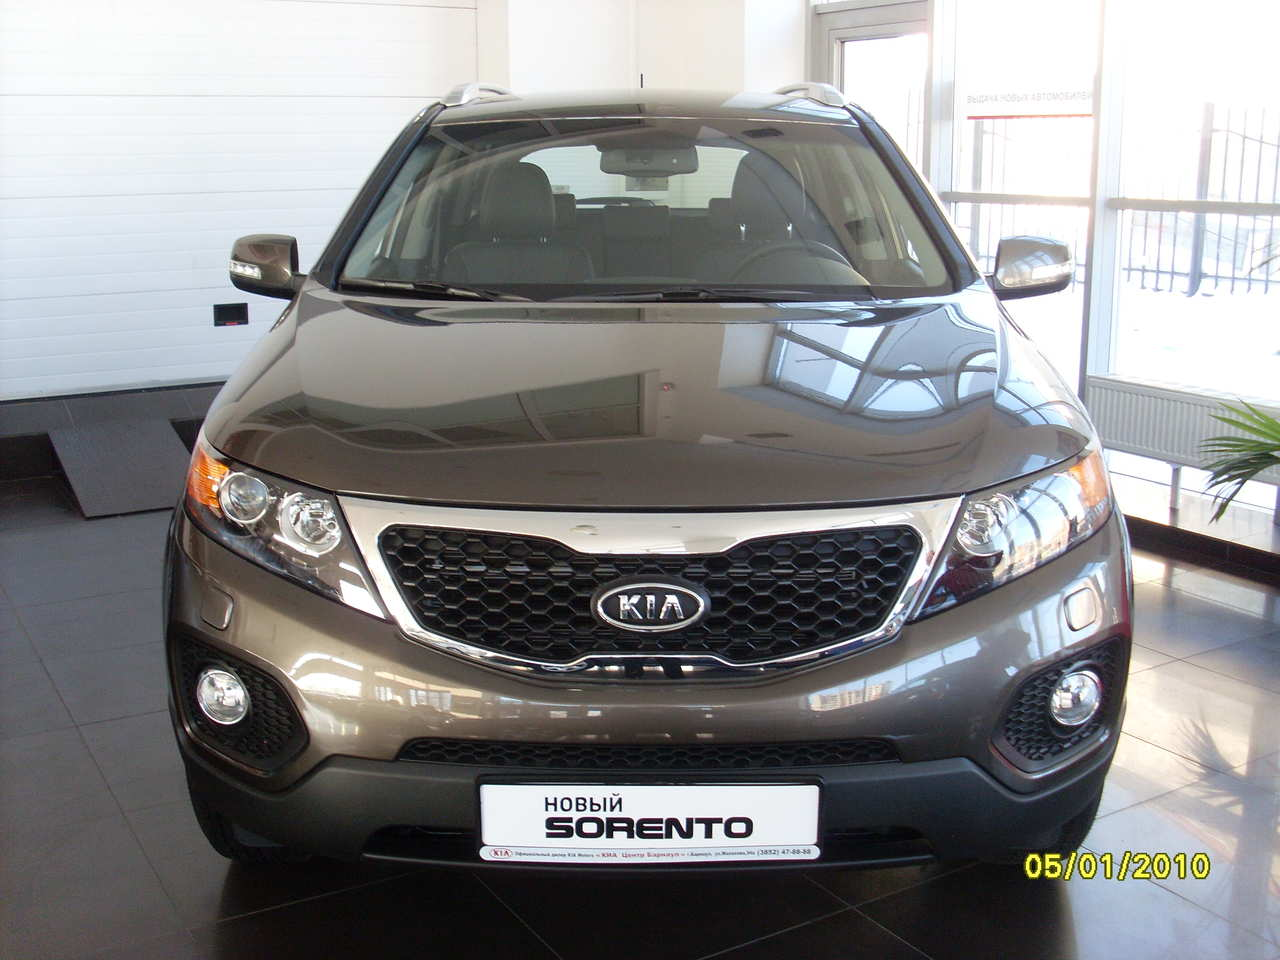 used 2010 kia sorento photos 2400cc gasoline automatic for sale. Black Bedroom Furniture Sets. Home Design Ideas